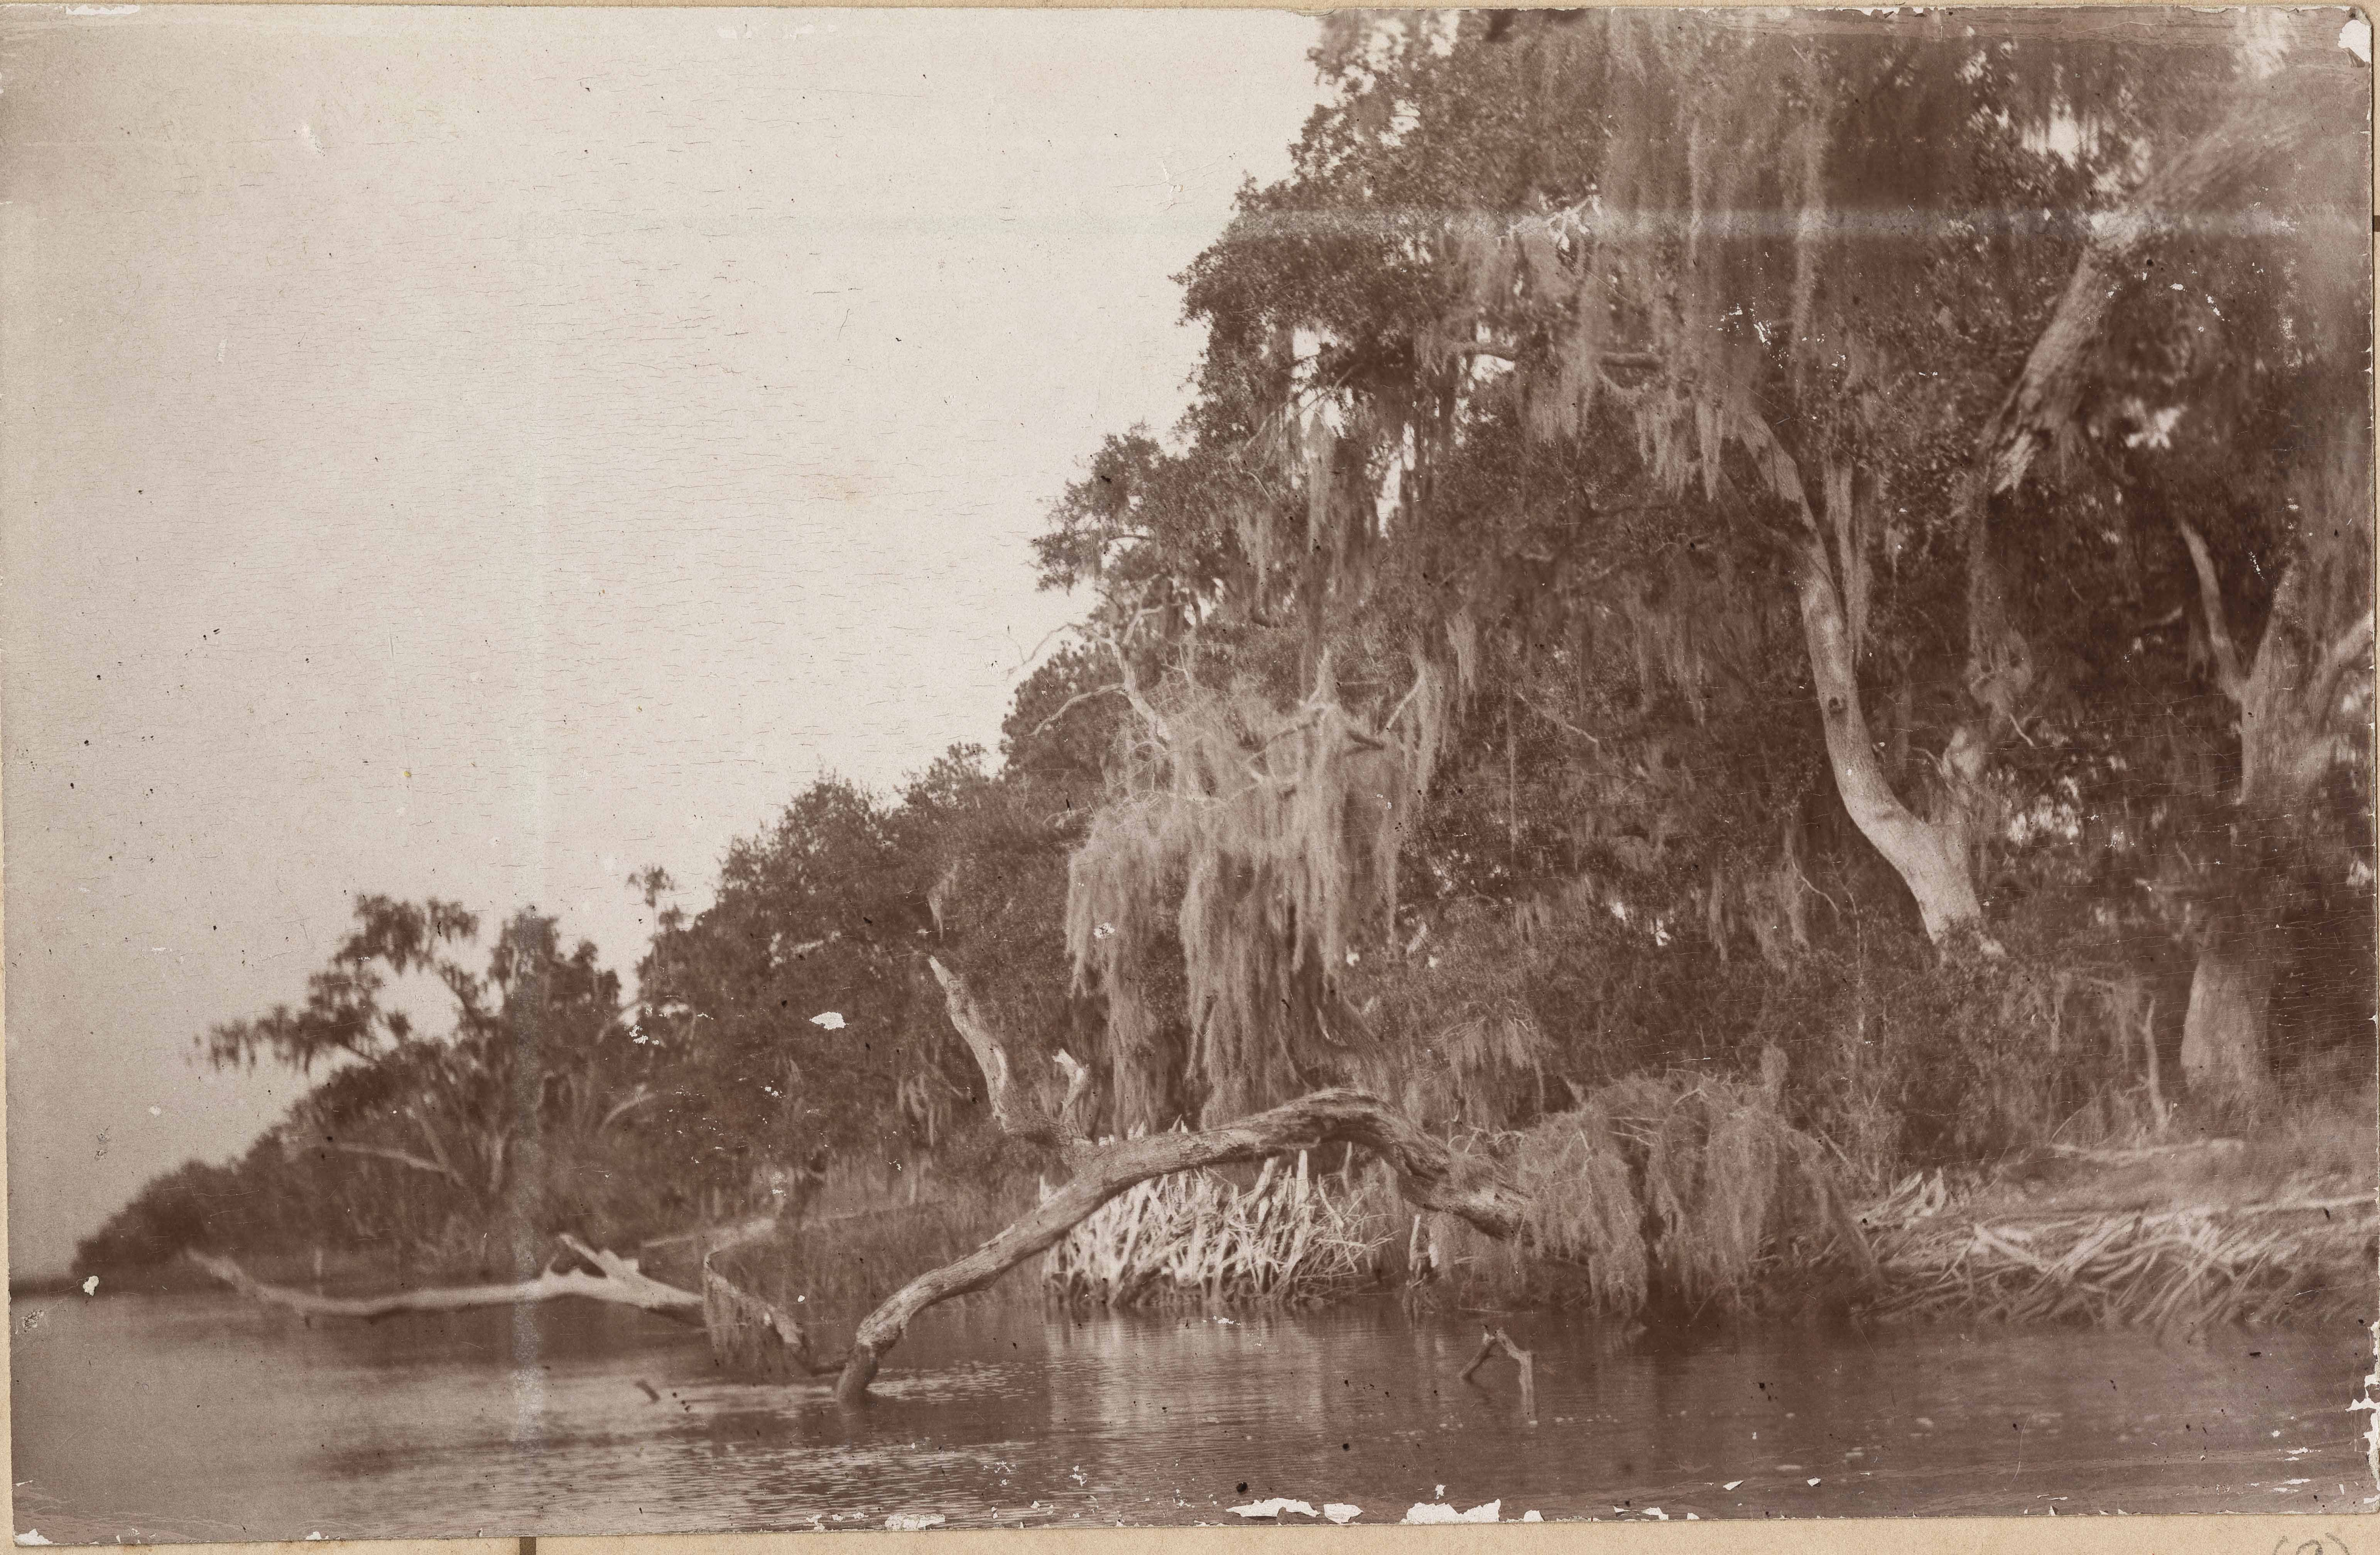 Scenic view of riverbank along Halls Island